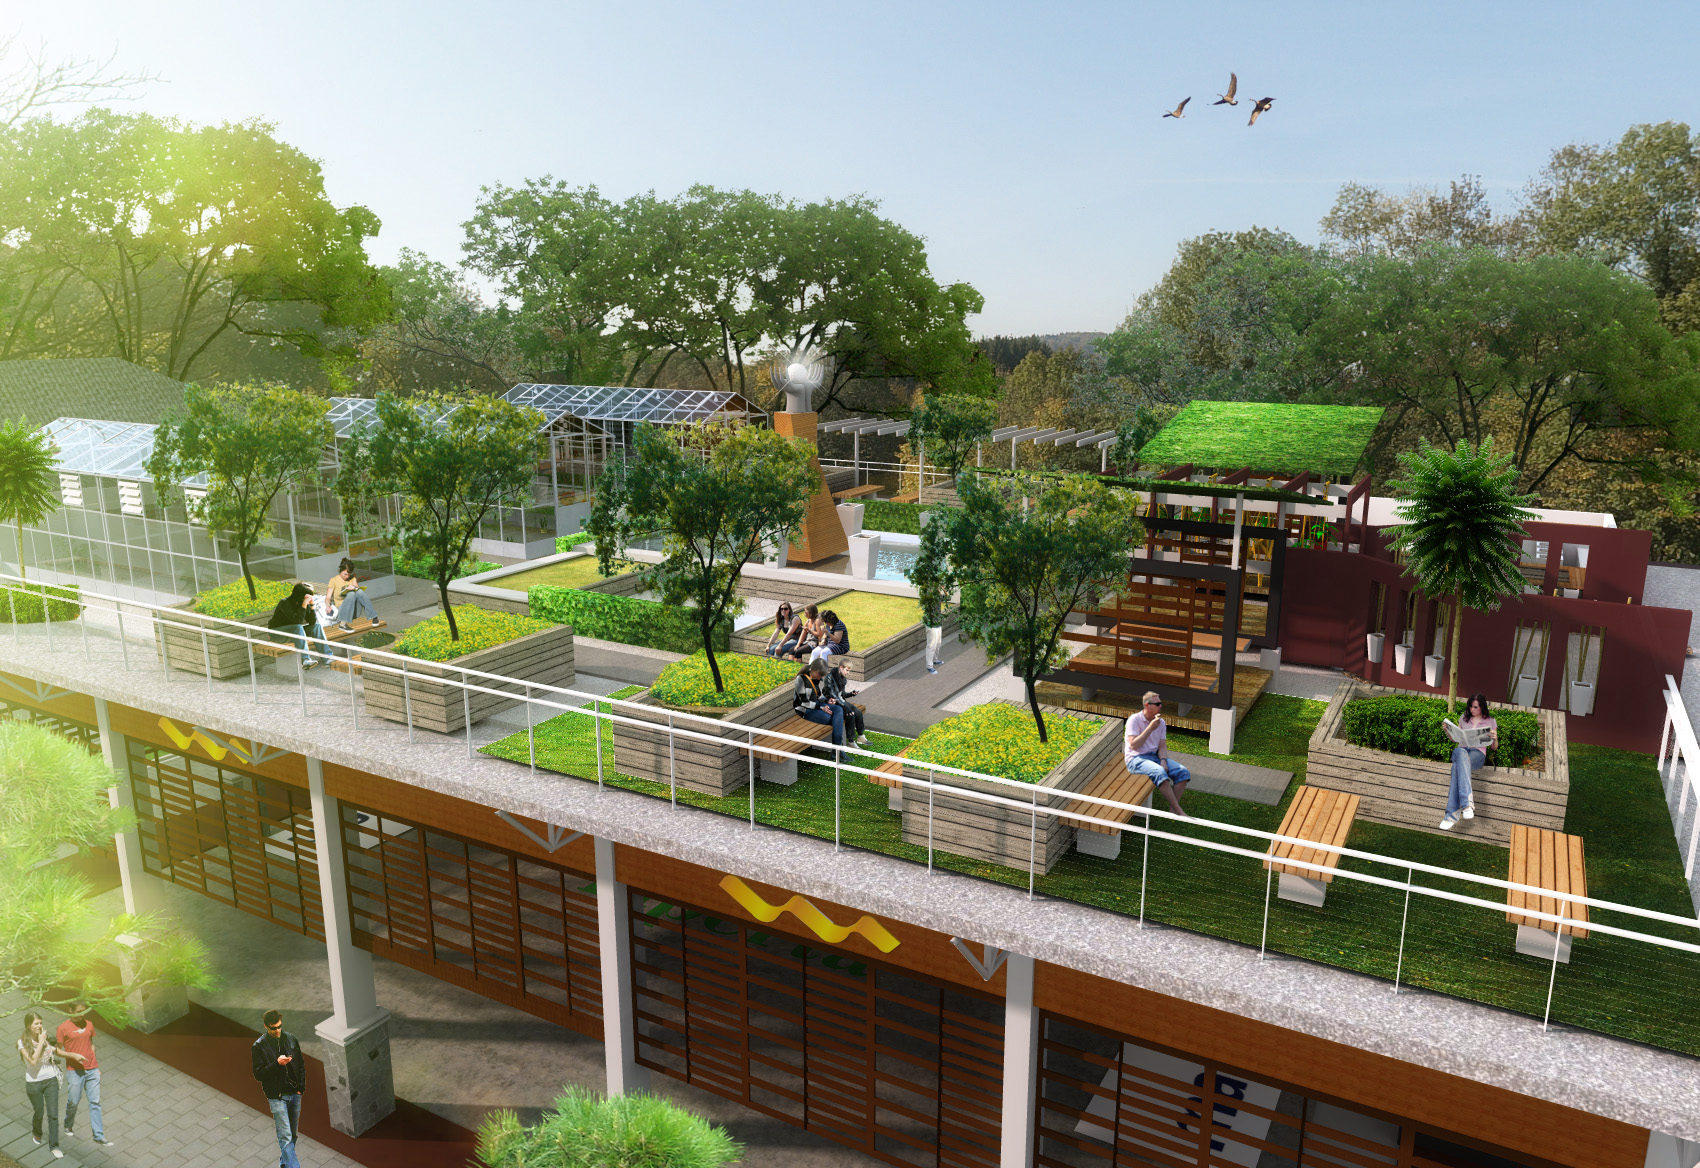 Unpad sport center roof garden by rheza nugraha at for Roof garden pictures